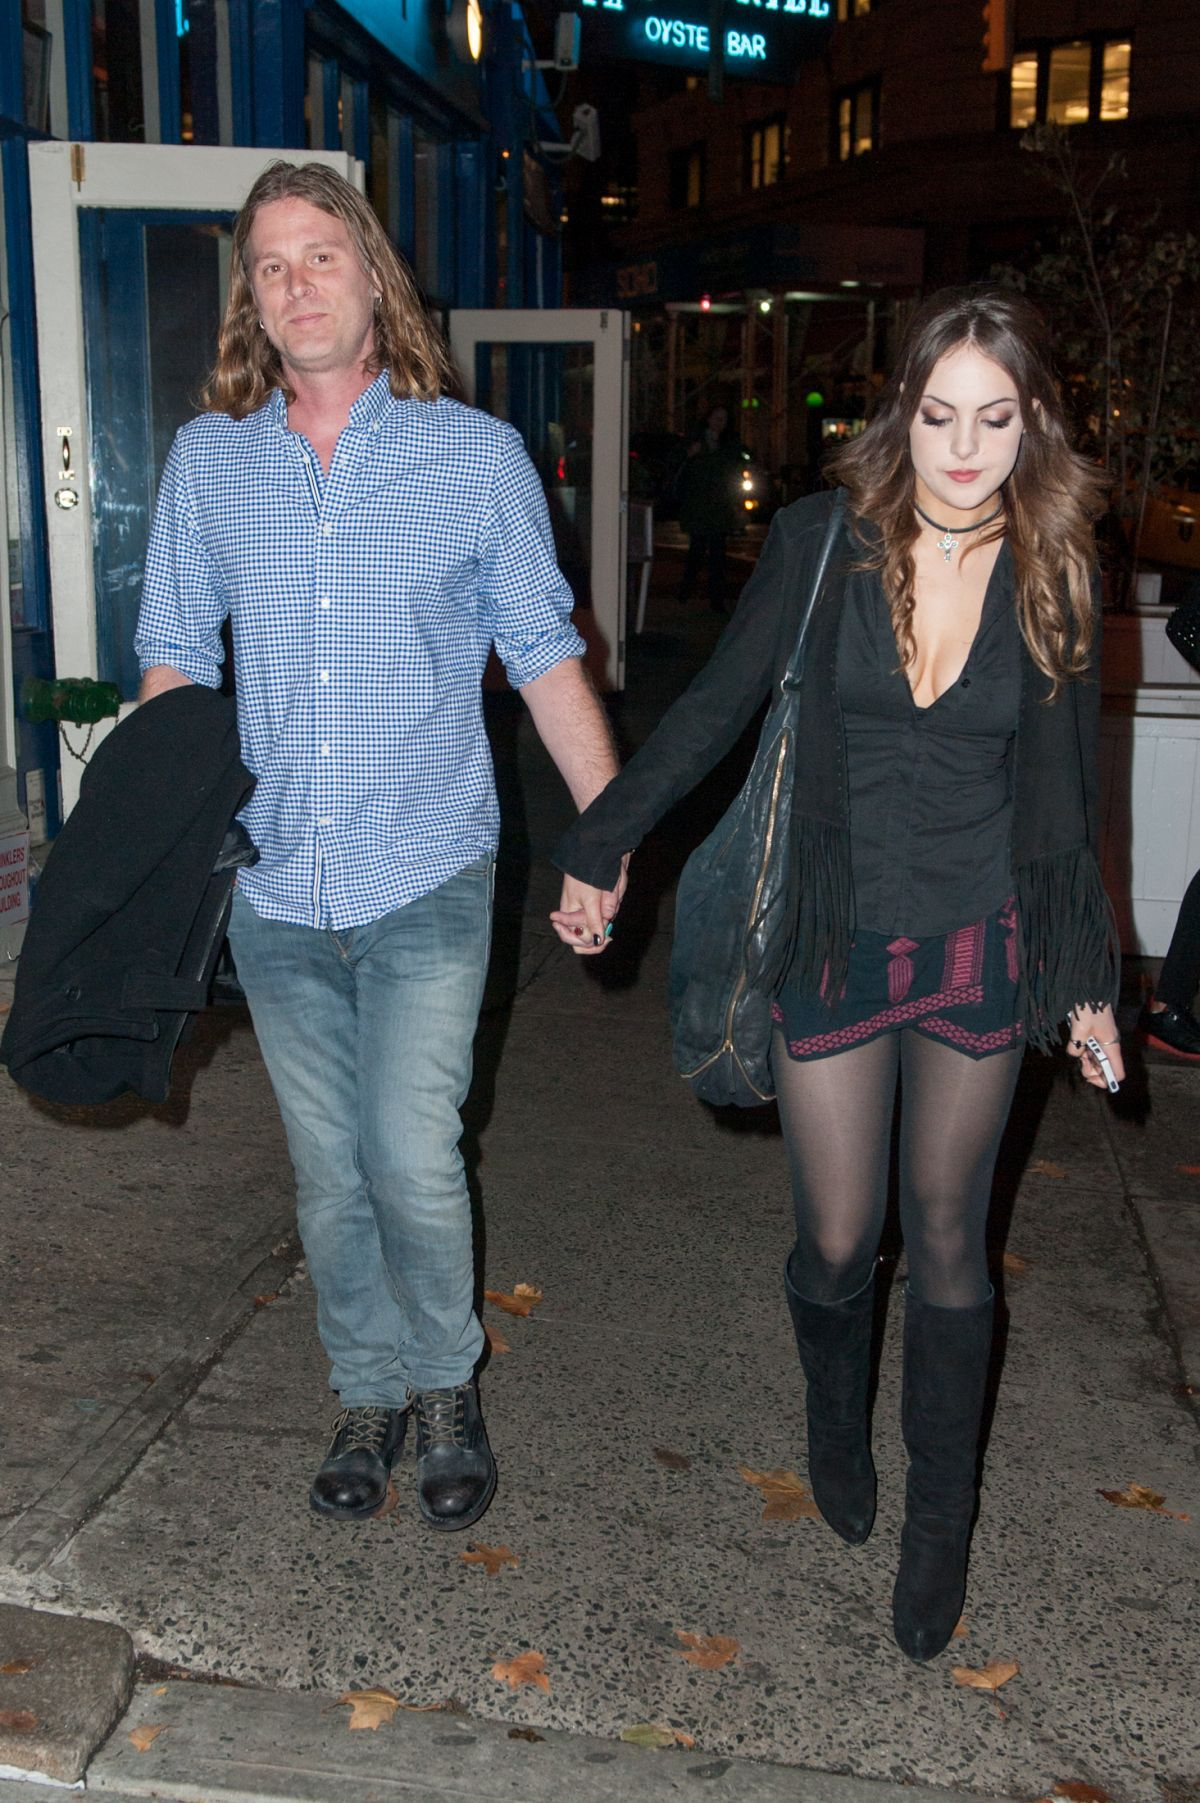 Elizabeth Gillies Going Out With Her Boyfriend - Http ...